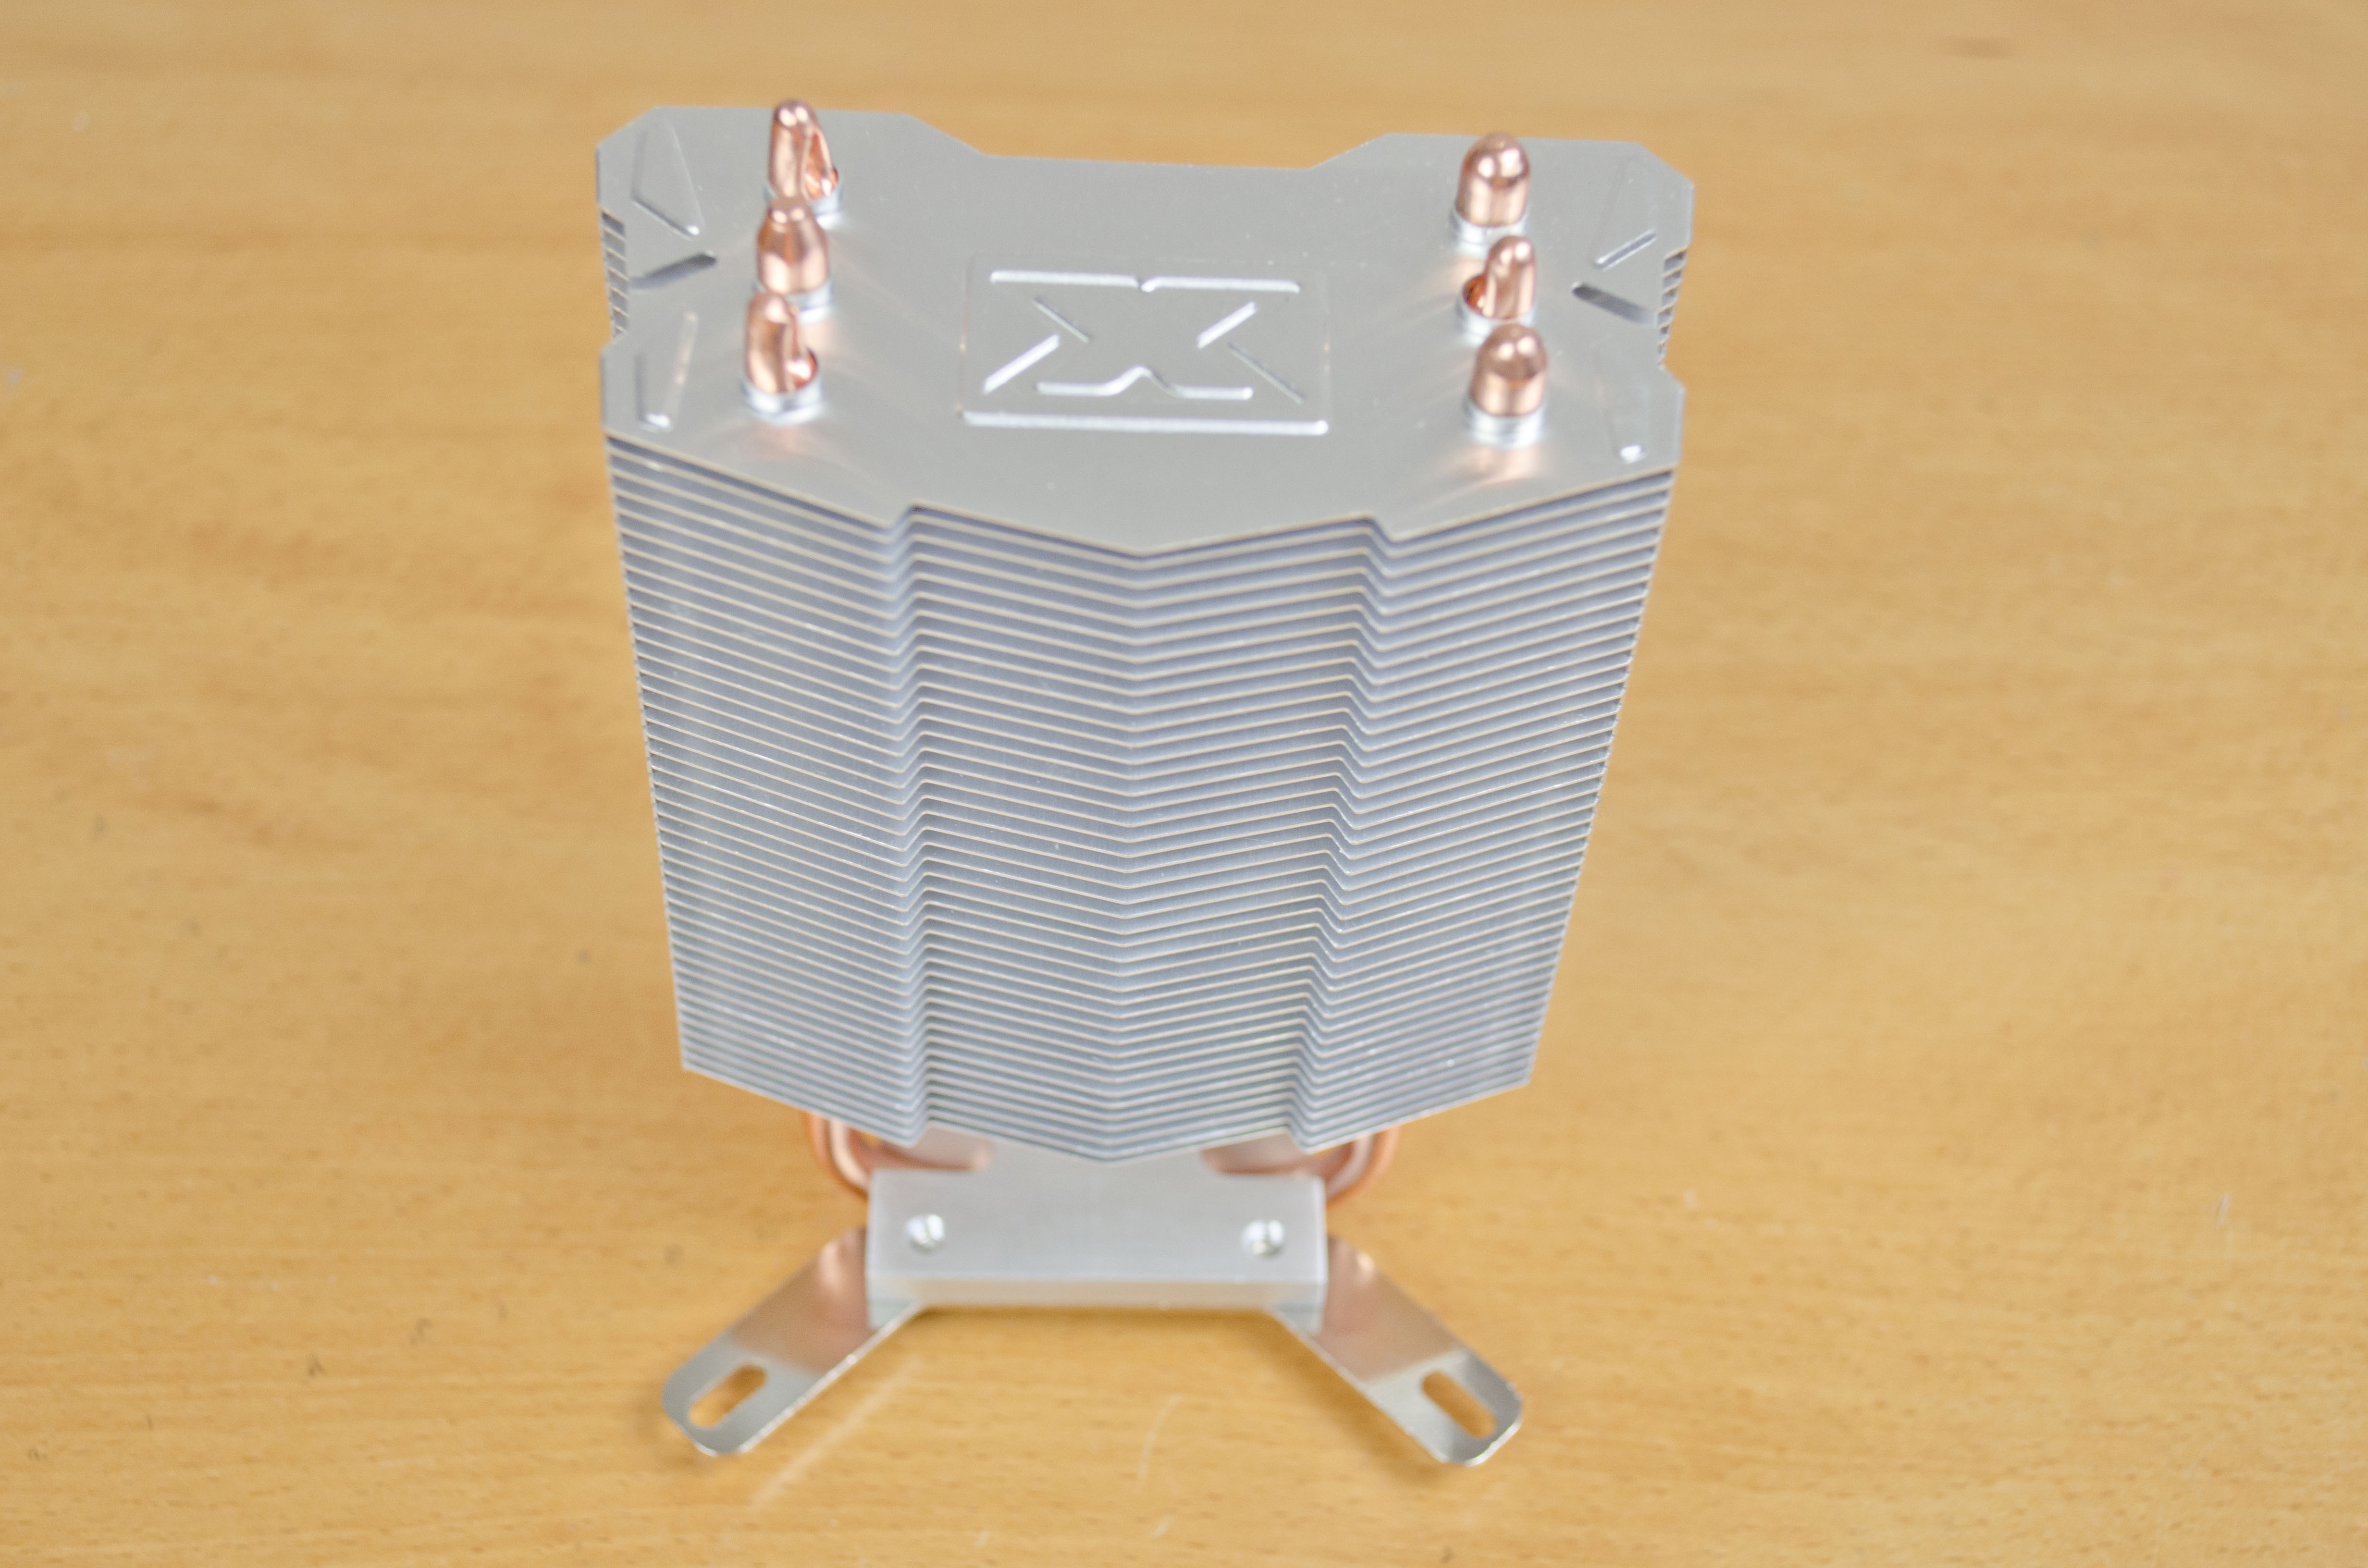 As mentioned it has direct touch technology and as such the heat pipes  #9D722E